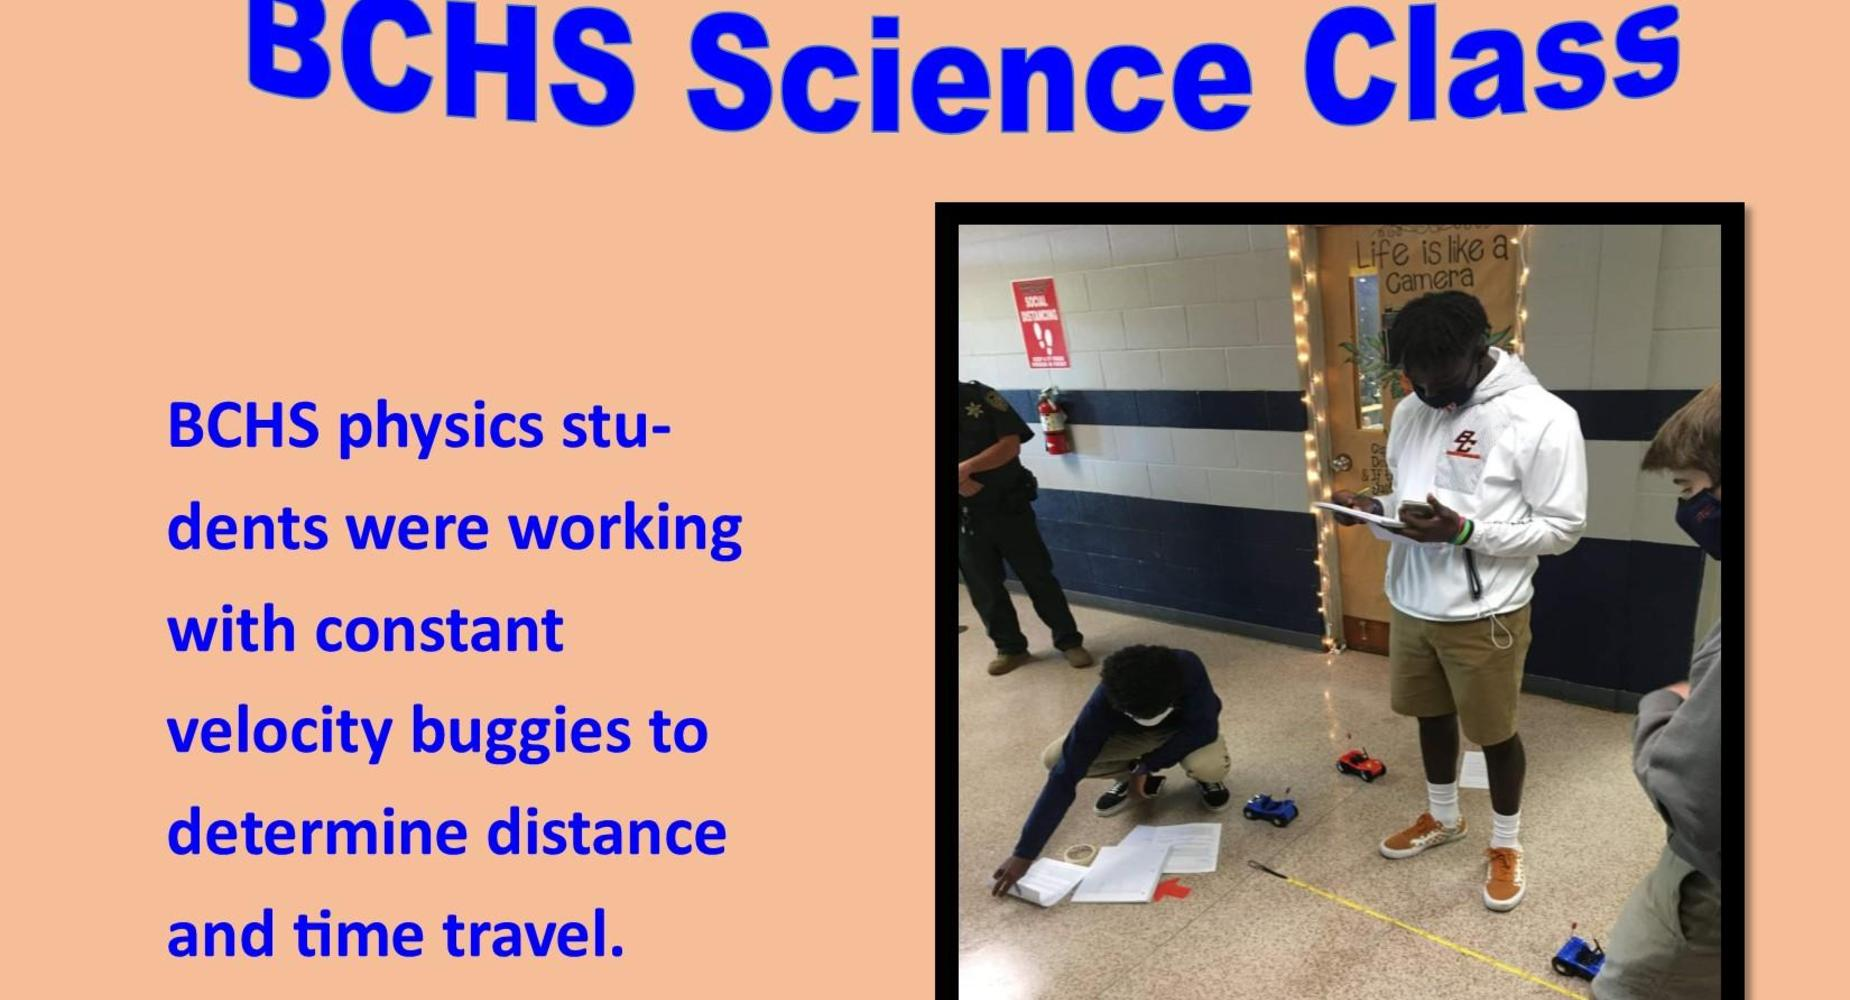 Ms. Henry's Physics students works with constant velocity buggies to determine time and distance.